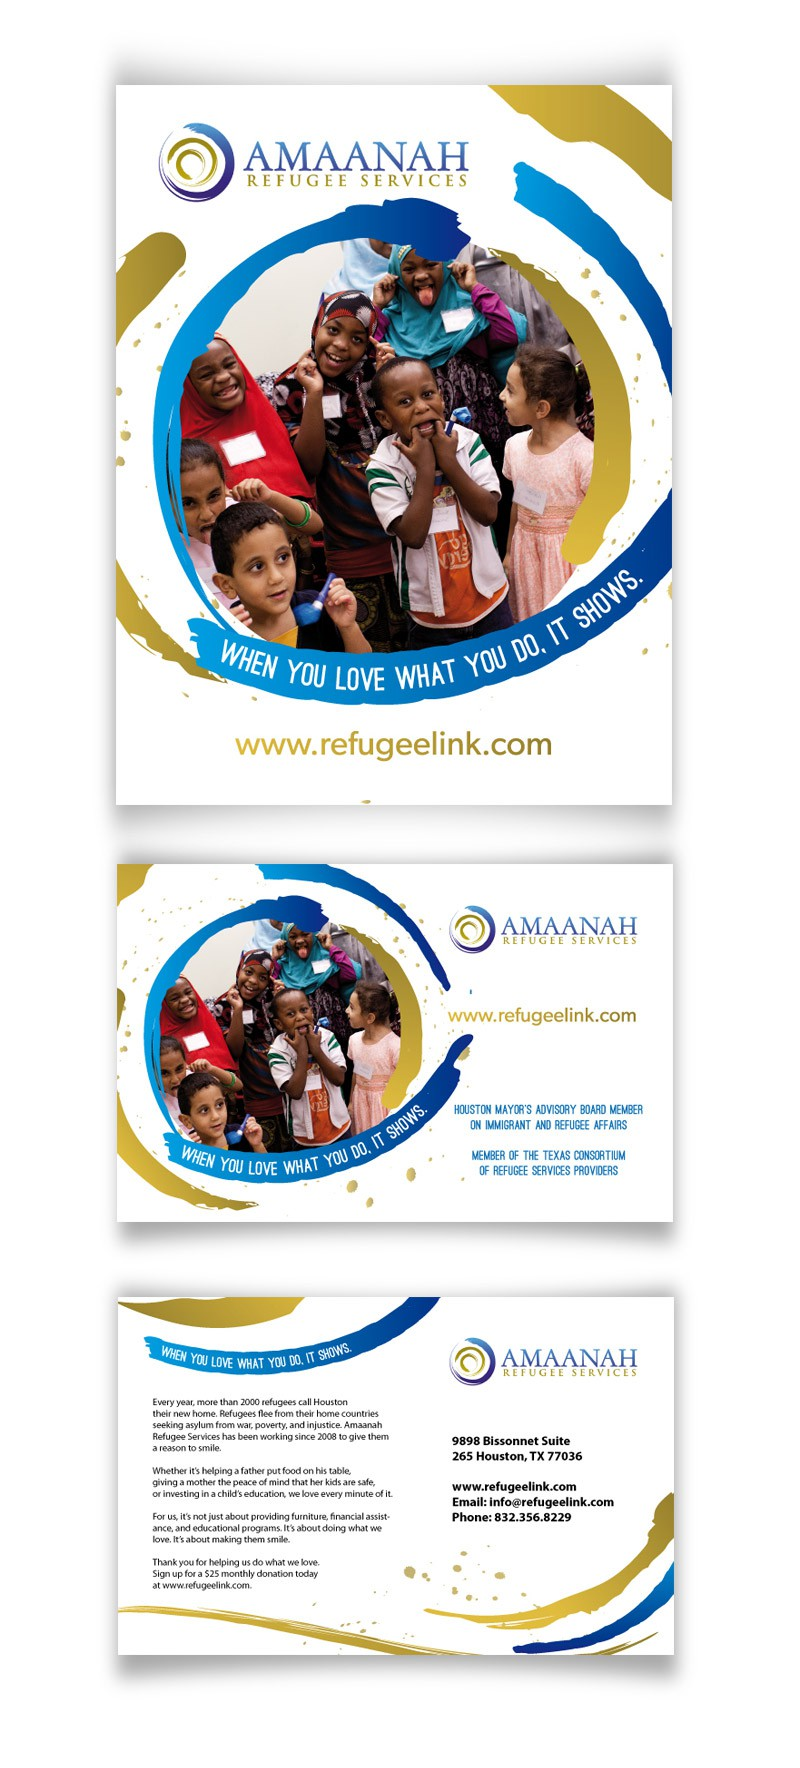 Create the next print or packaging design for Amaanah Refugee Services